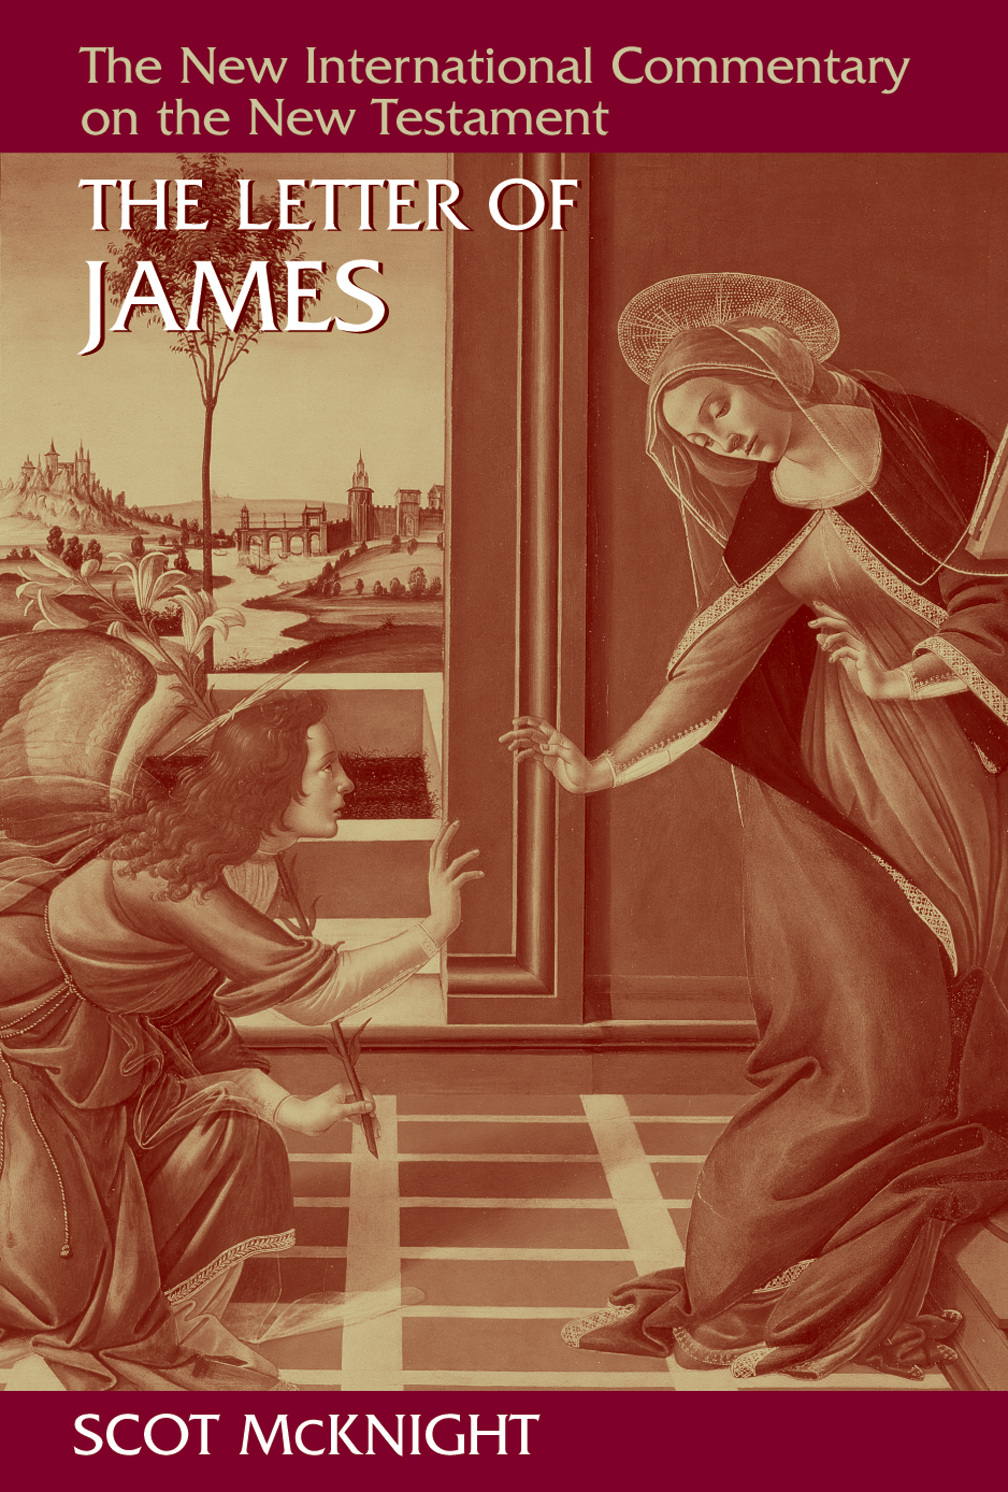 exegesis of the book of james Exegesis (/ ˌ ɛ k s ɪ ˈ dʒ iː s ɪ s / from the greek ἐξήγησις from ἐξηγεῖσθαι, to lead out) is a critical explanation or interpretation of a text, particularly a religious text.